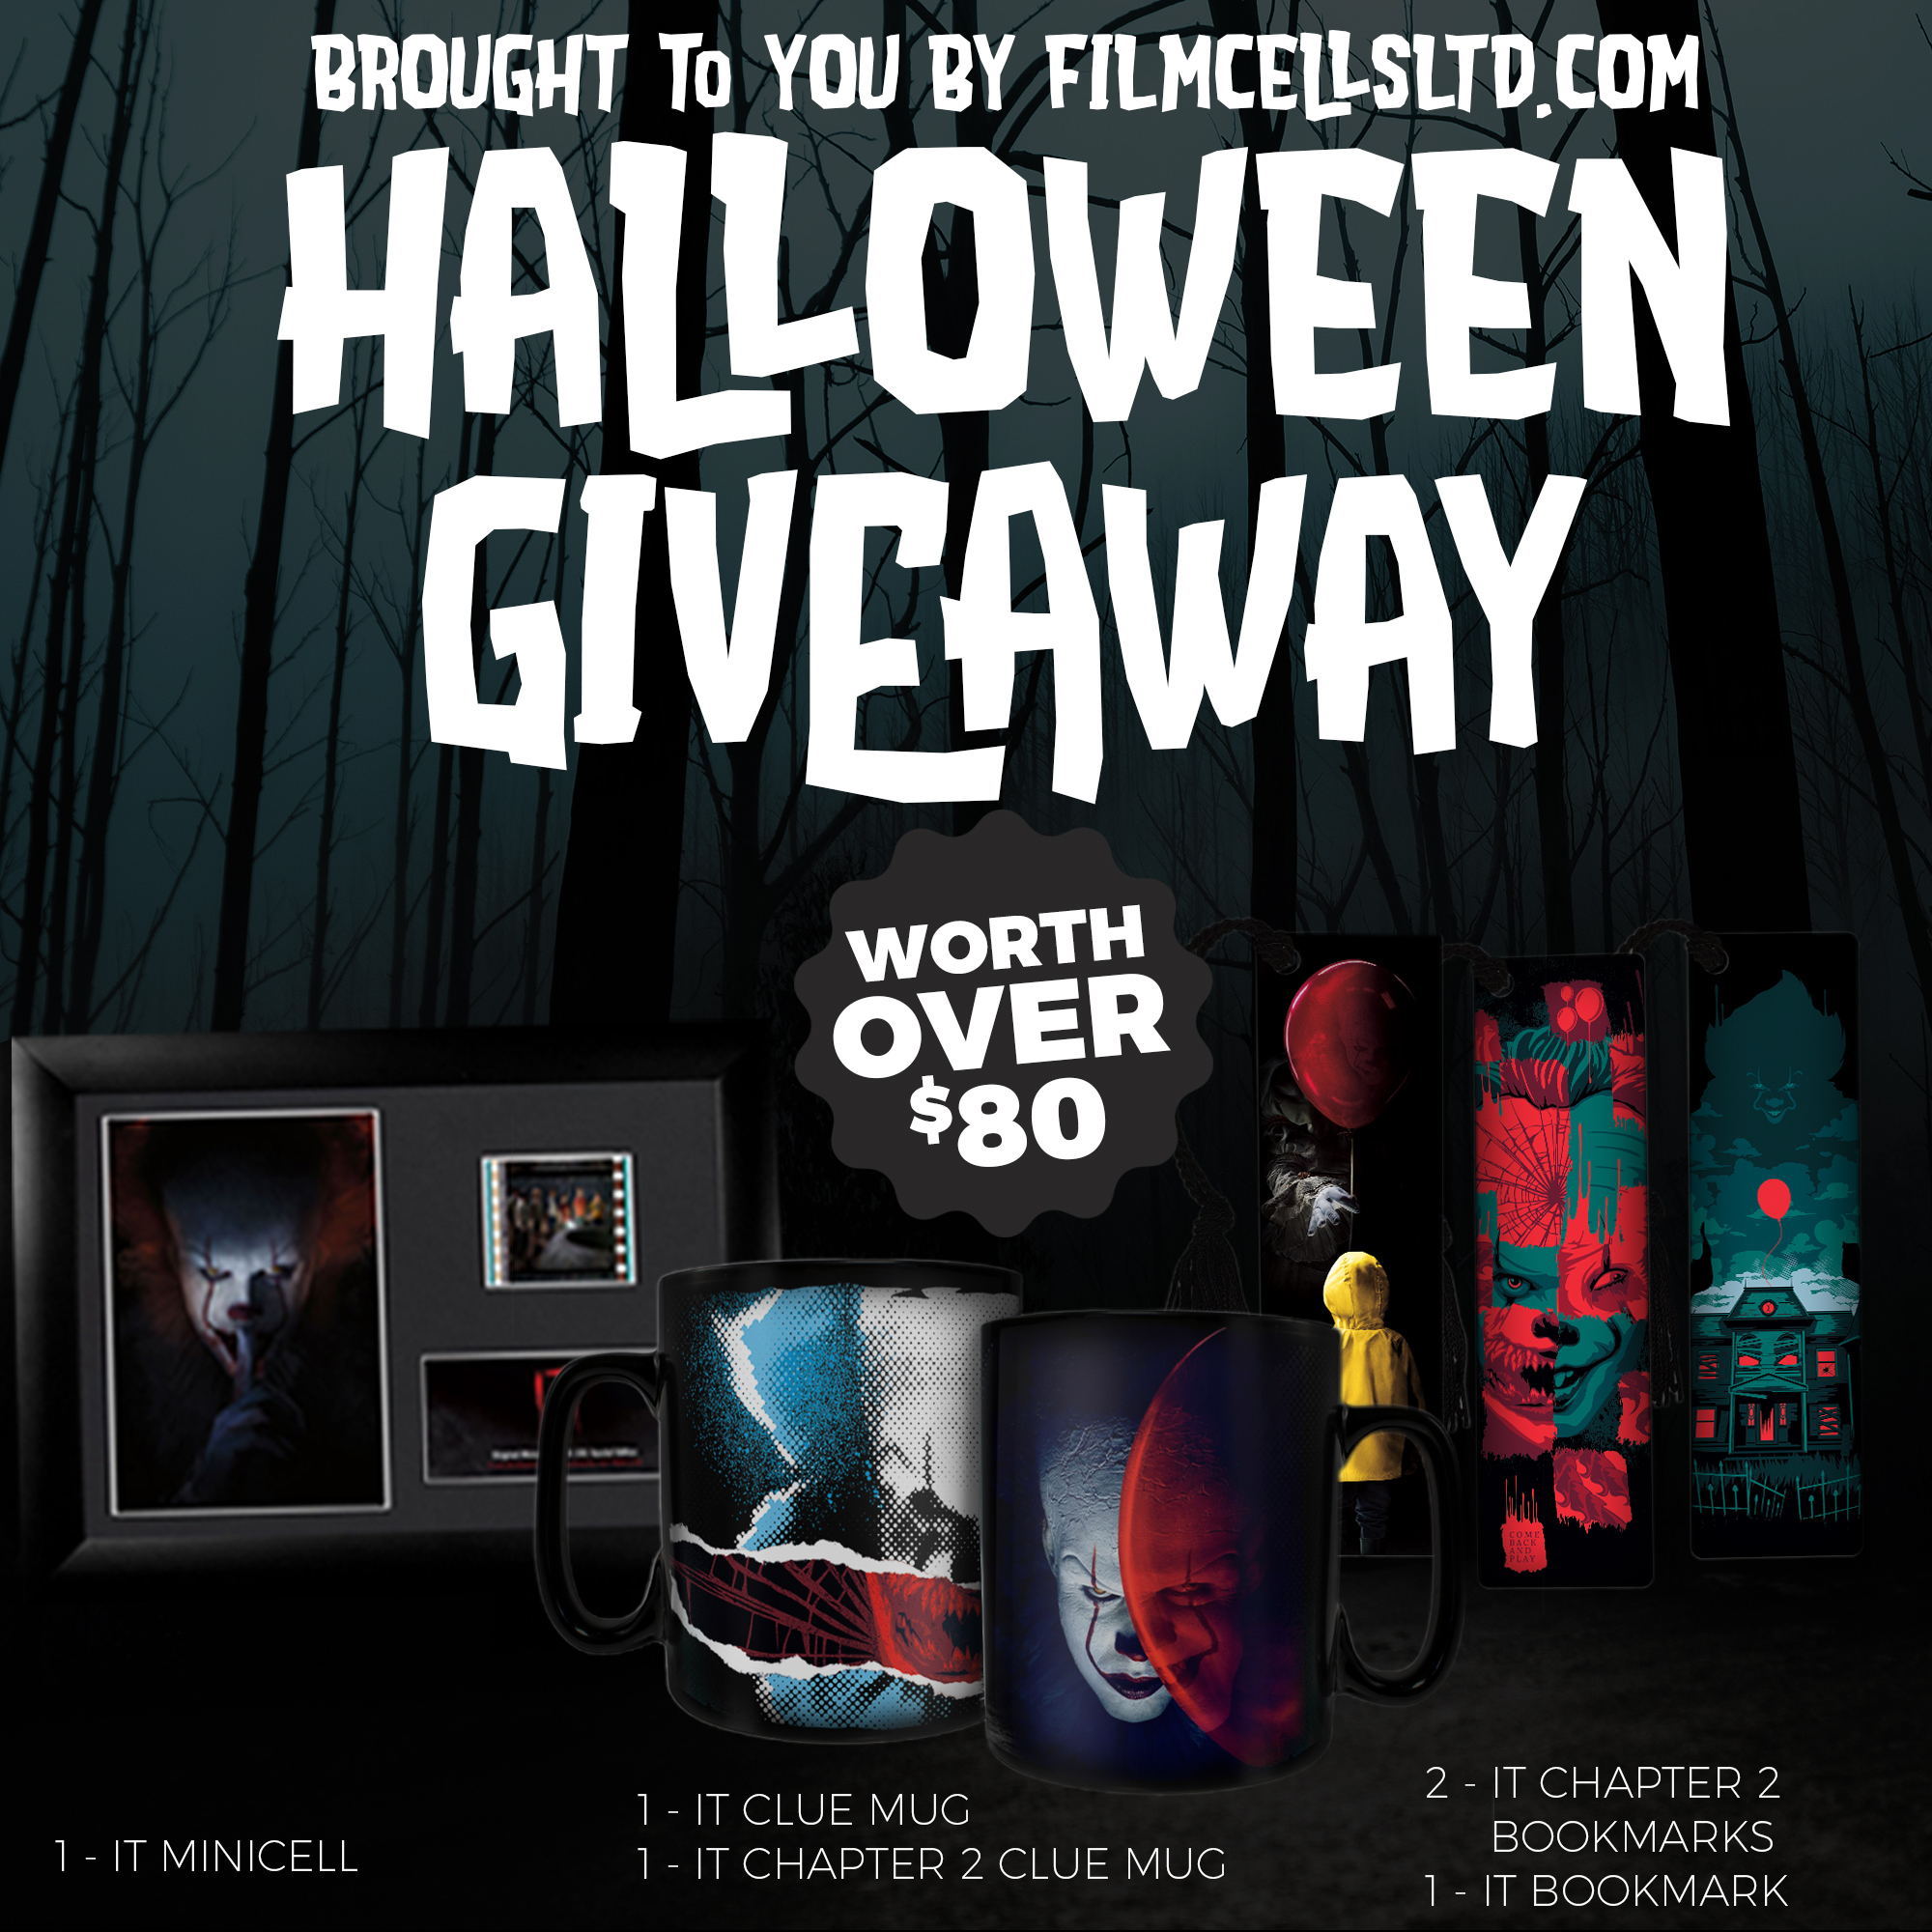 Enter To Win The 2019 Halloween Giveaway From Filmcells, Ltd.